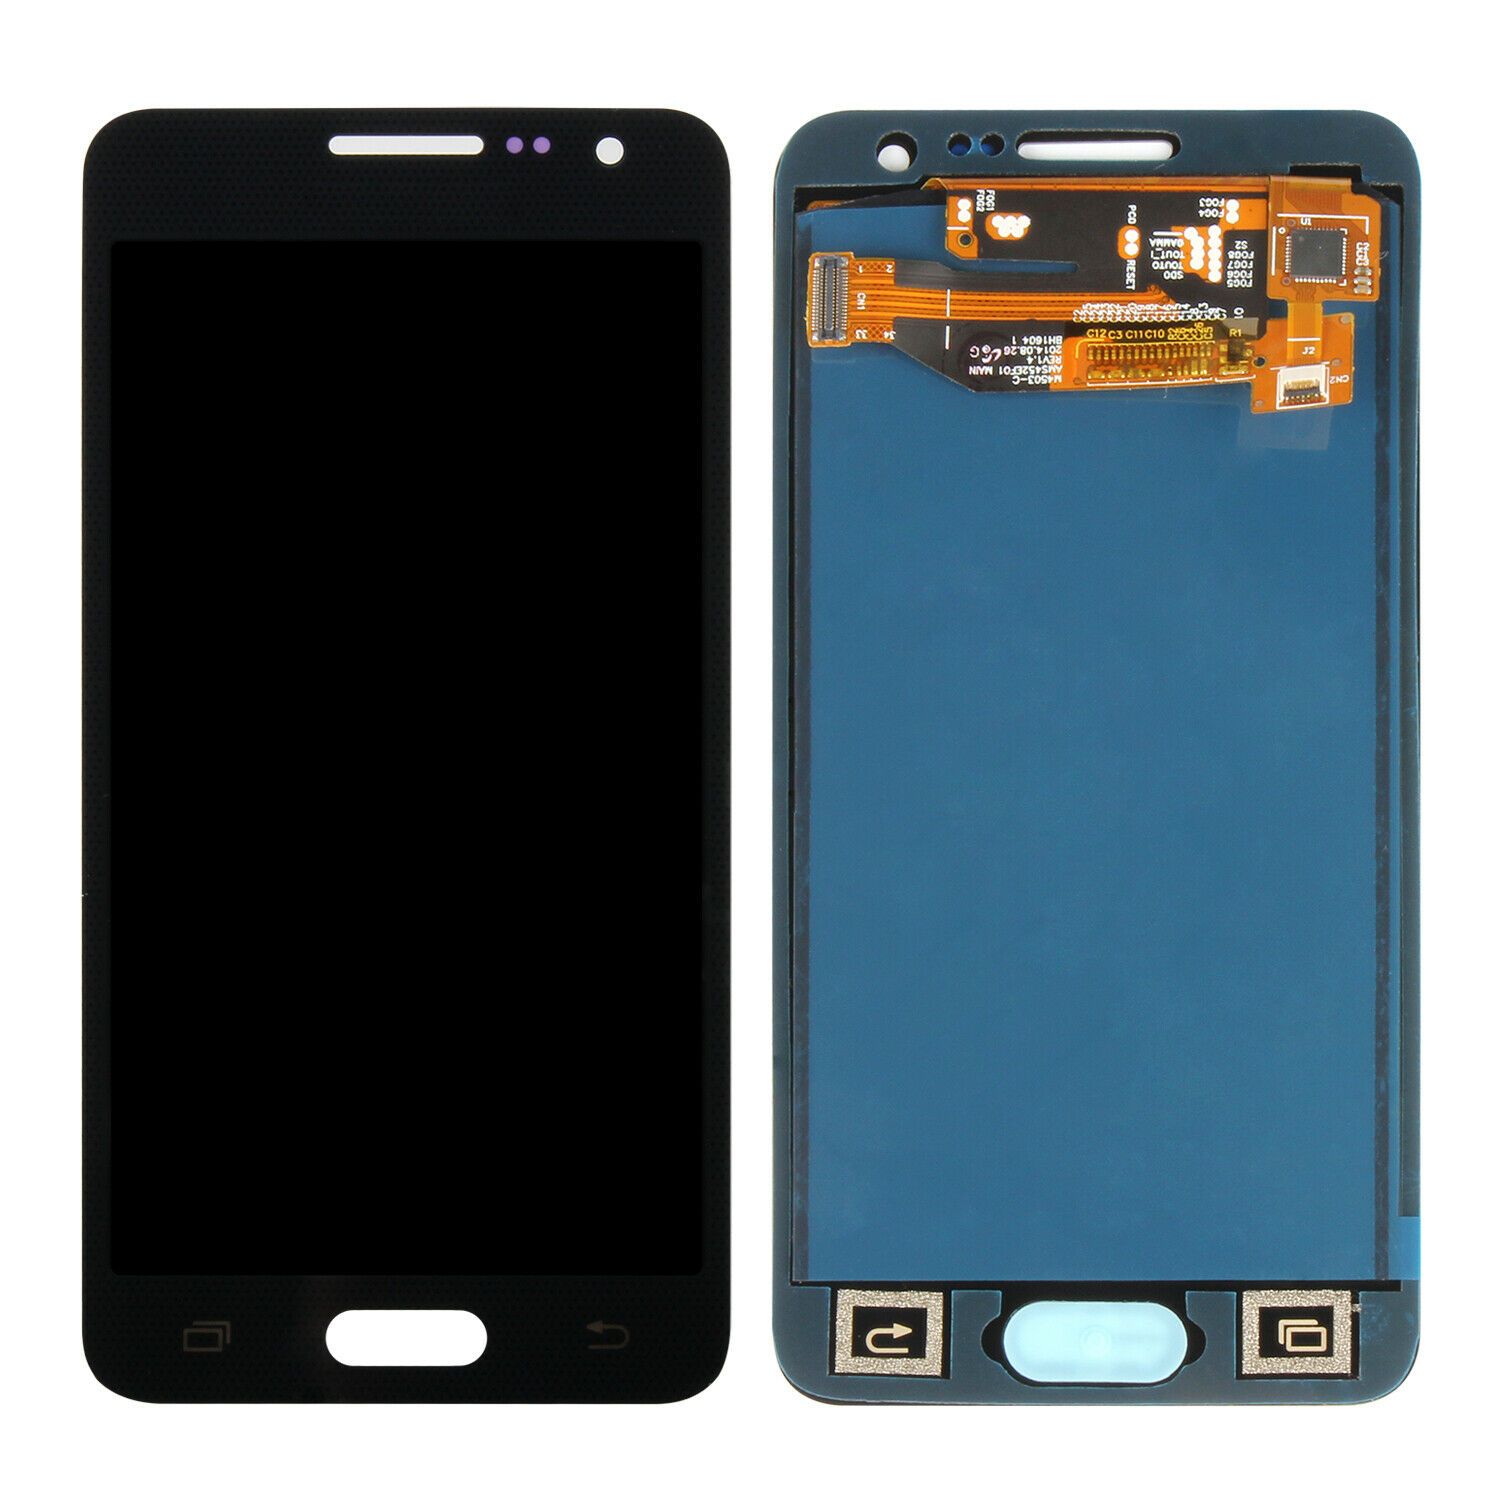 100% Tested TFT <font><b>LCD</b></font> For <font><b>Samsung</b></font> Galaxy A3 2015 <font><b>A300</b></font> A3000 A300F A300M <font><b>LCD</b></font> Display+Touch Screen Assembly brightness Can ad image